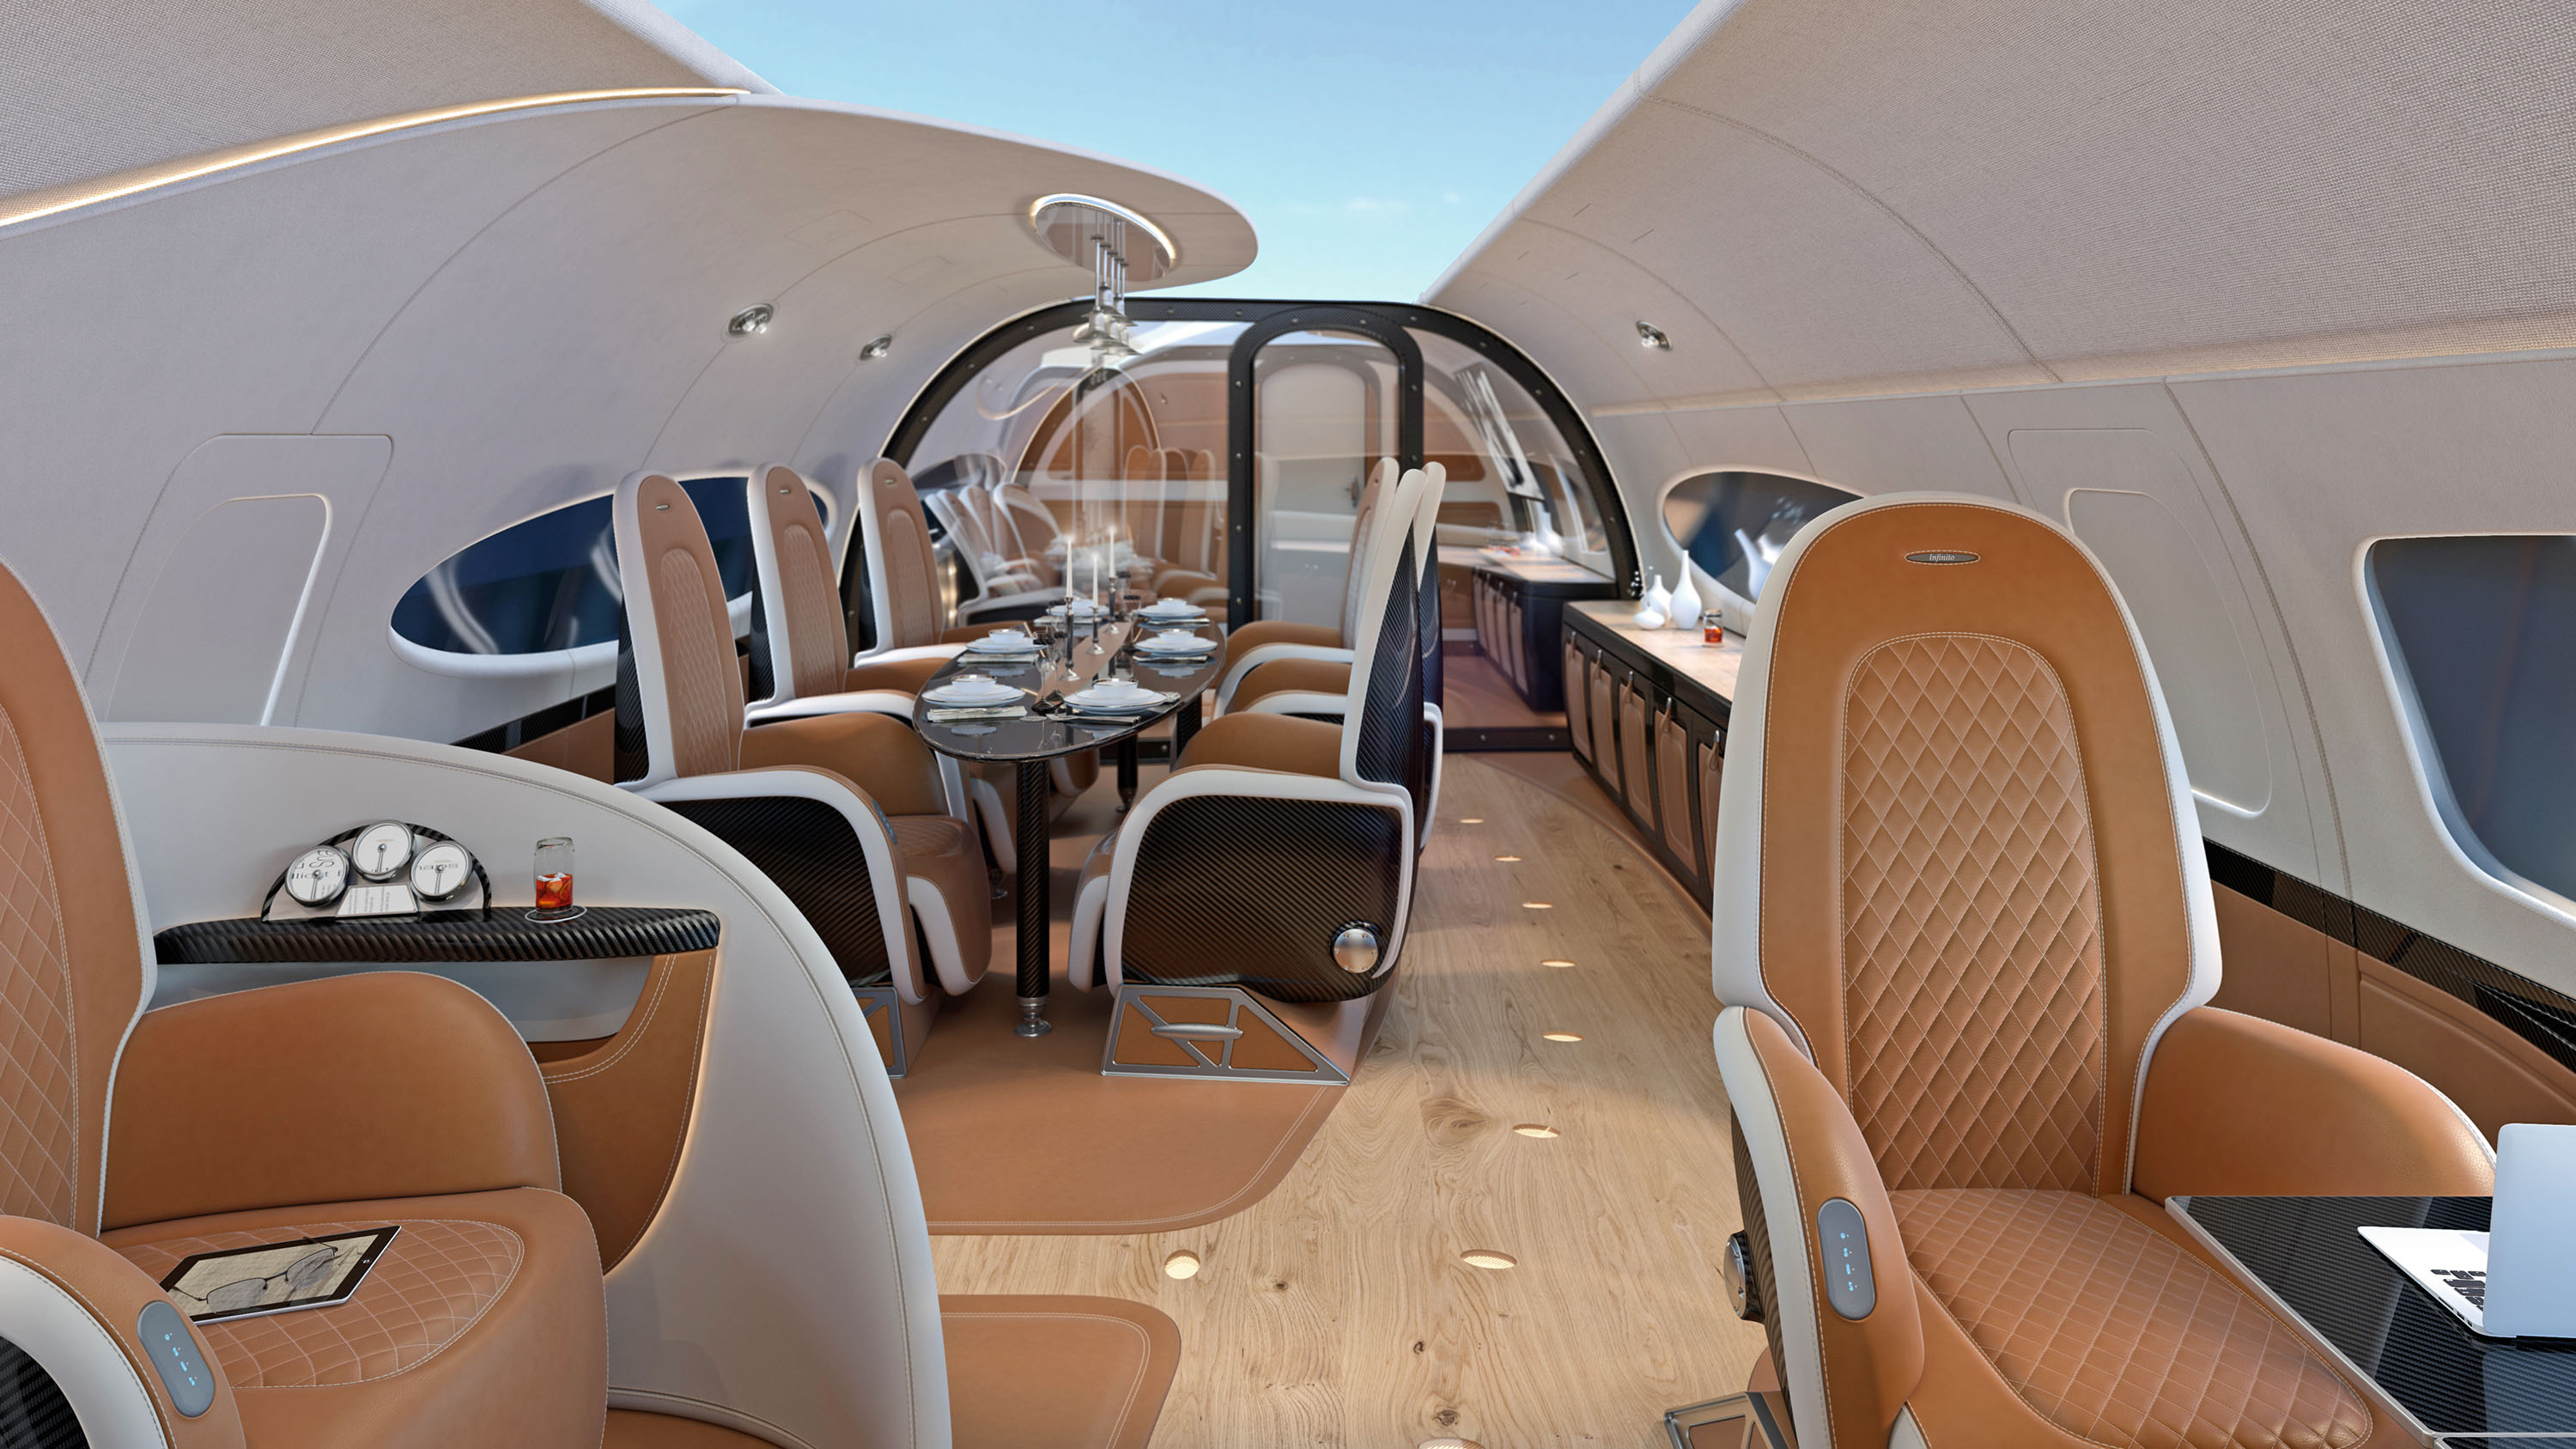 Pagani's Infinito Sky Ceiling for the Airbus ACJ319neo Jet